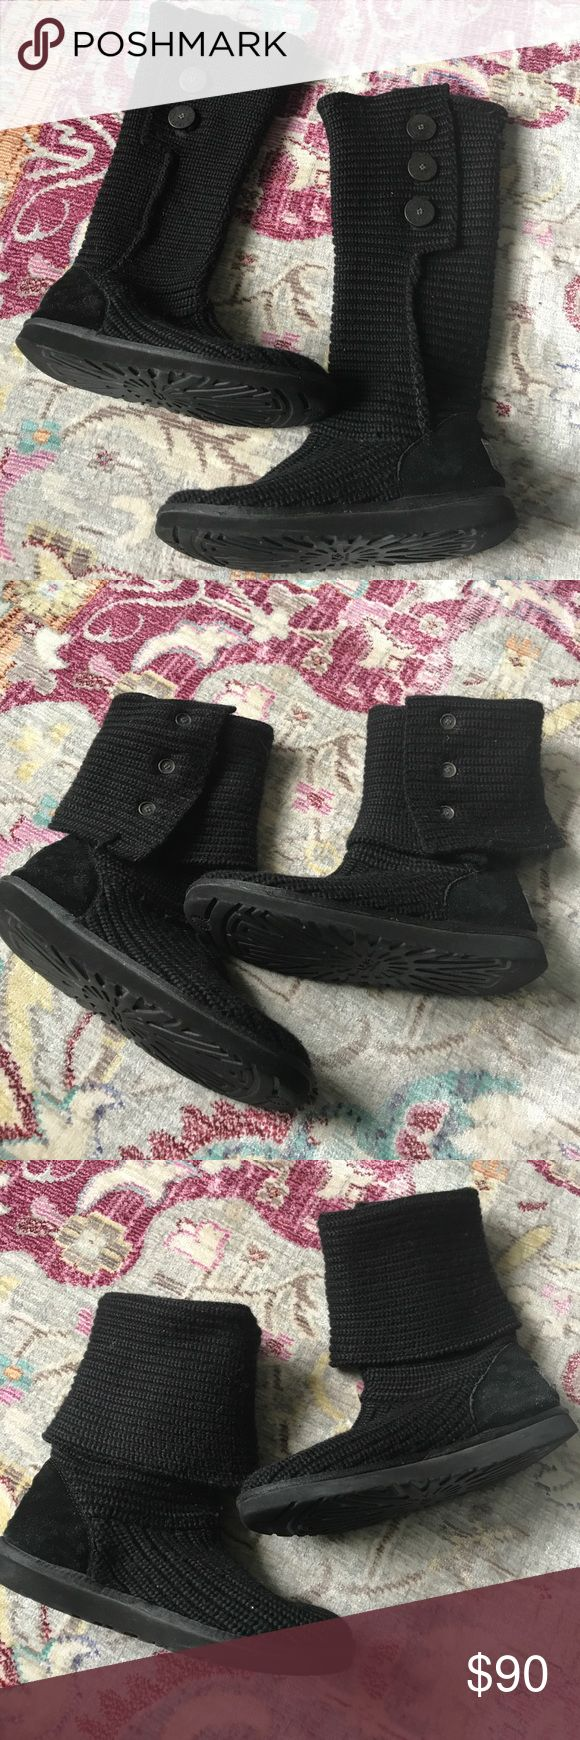 UGG Cardy tall black boots size 10 UGG Cardy tall black boots size 10. GUC UGG Shoes Winter & Rain Boots